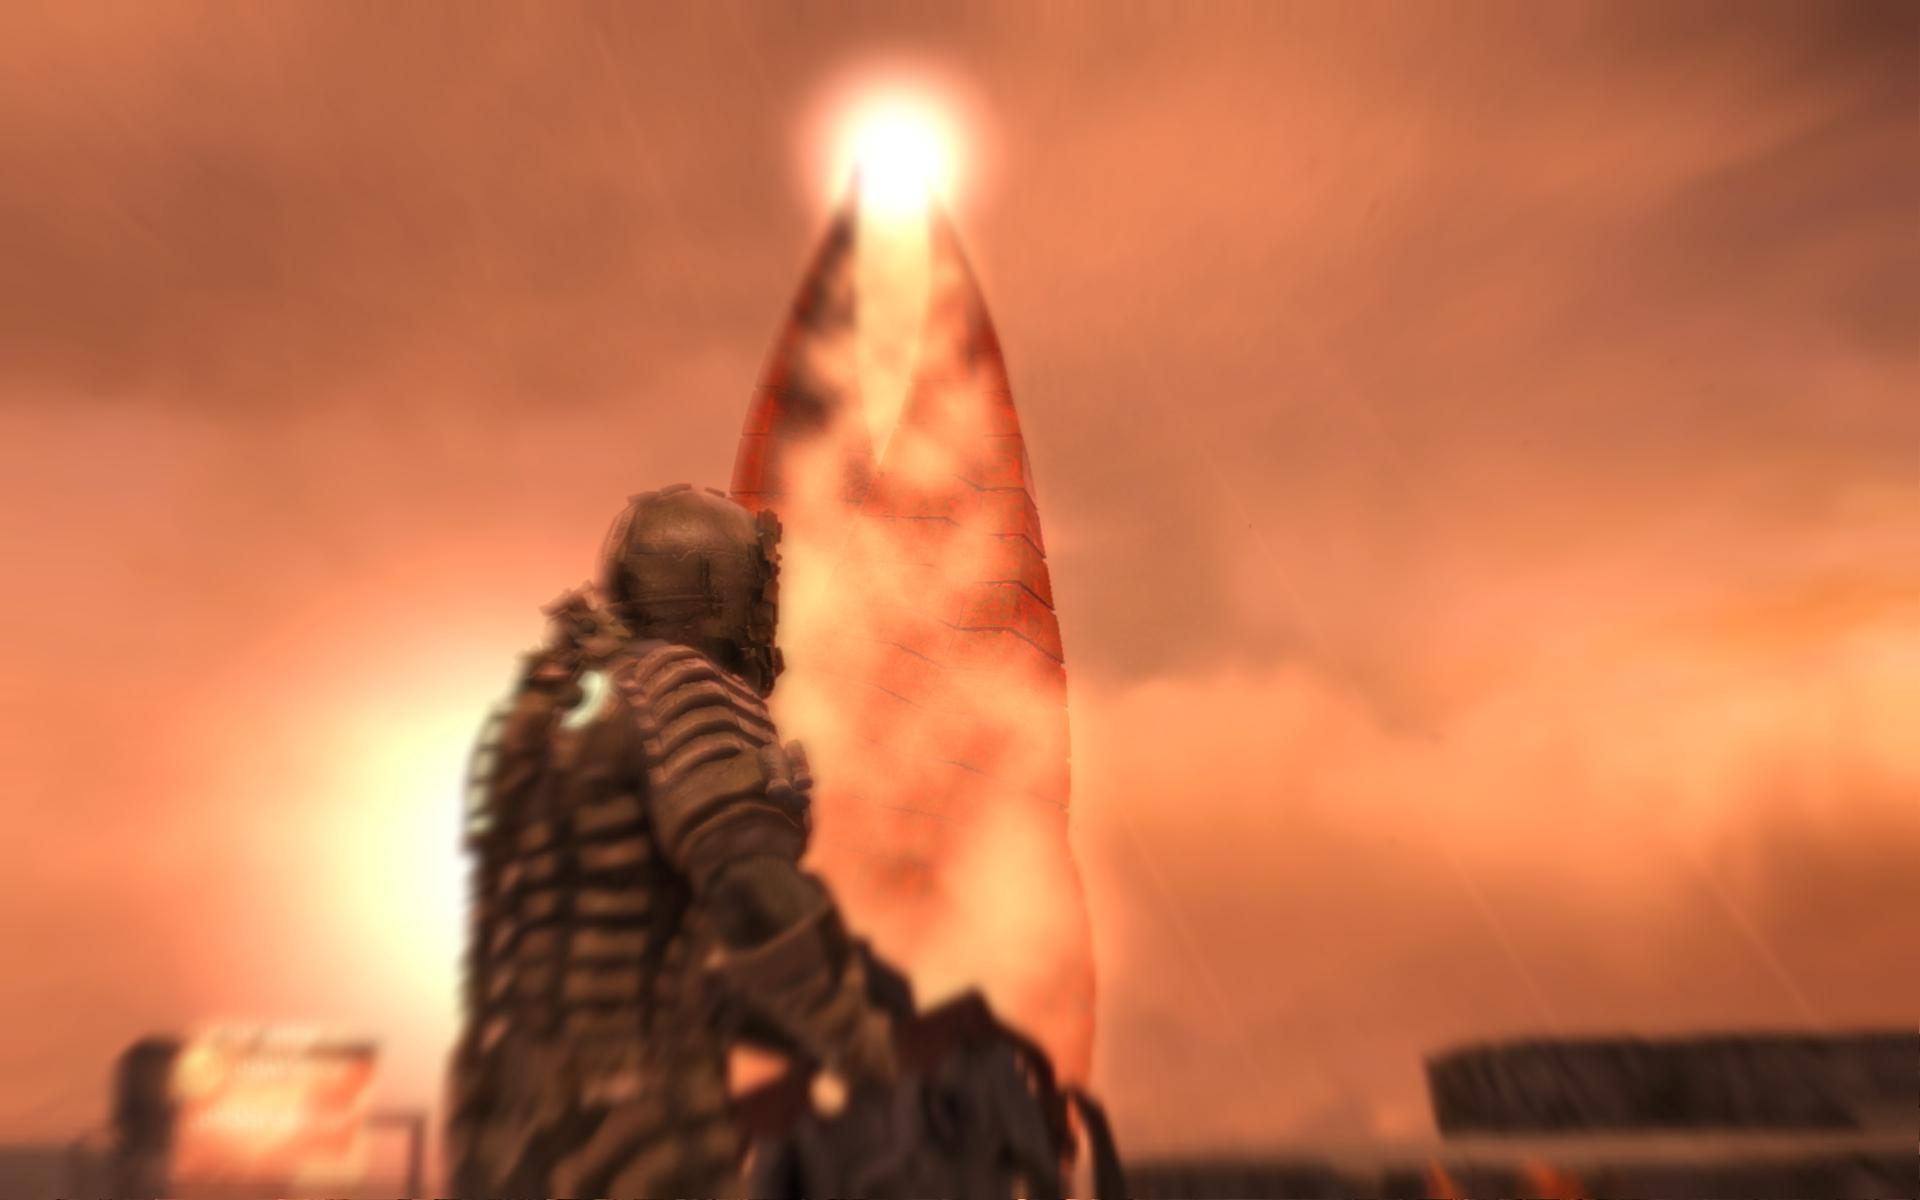 dead-space-2011-01-30-17-35-29-66